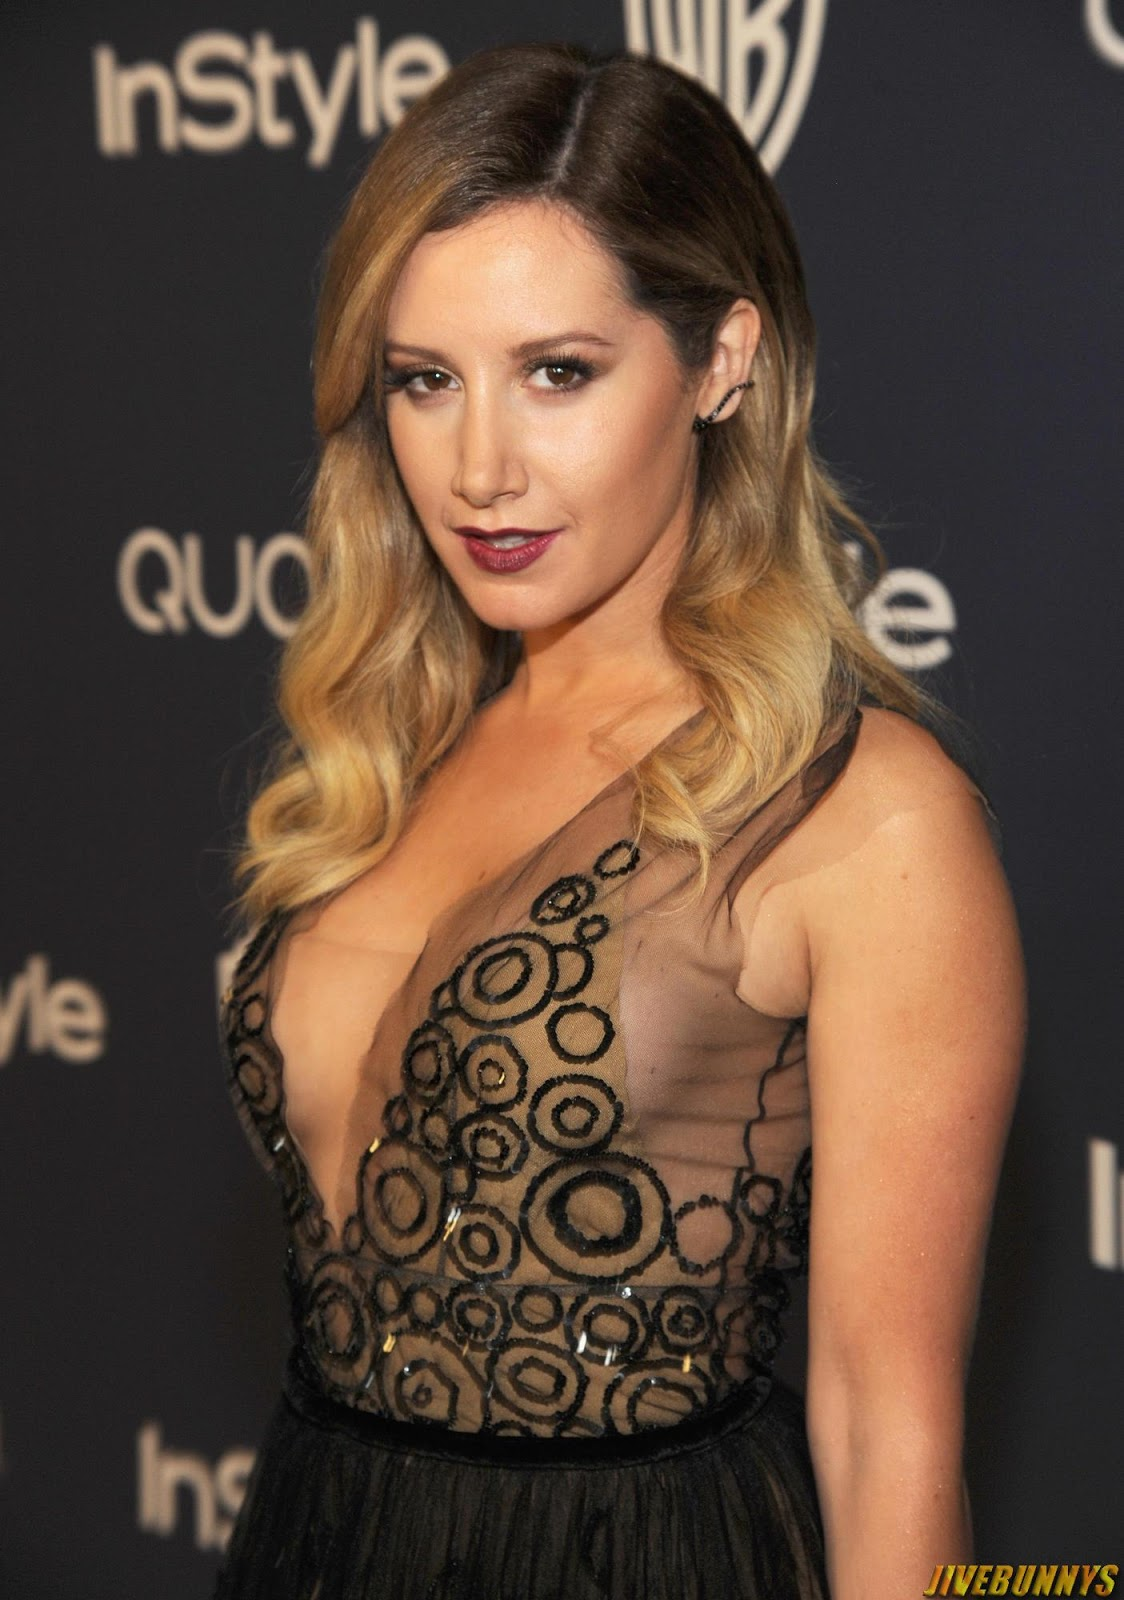 ASHLEY TISDALE RED CARPET SIDE BOOB